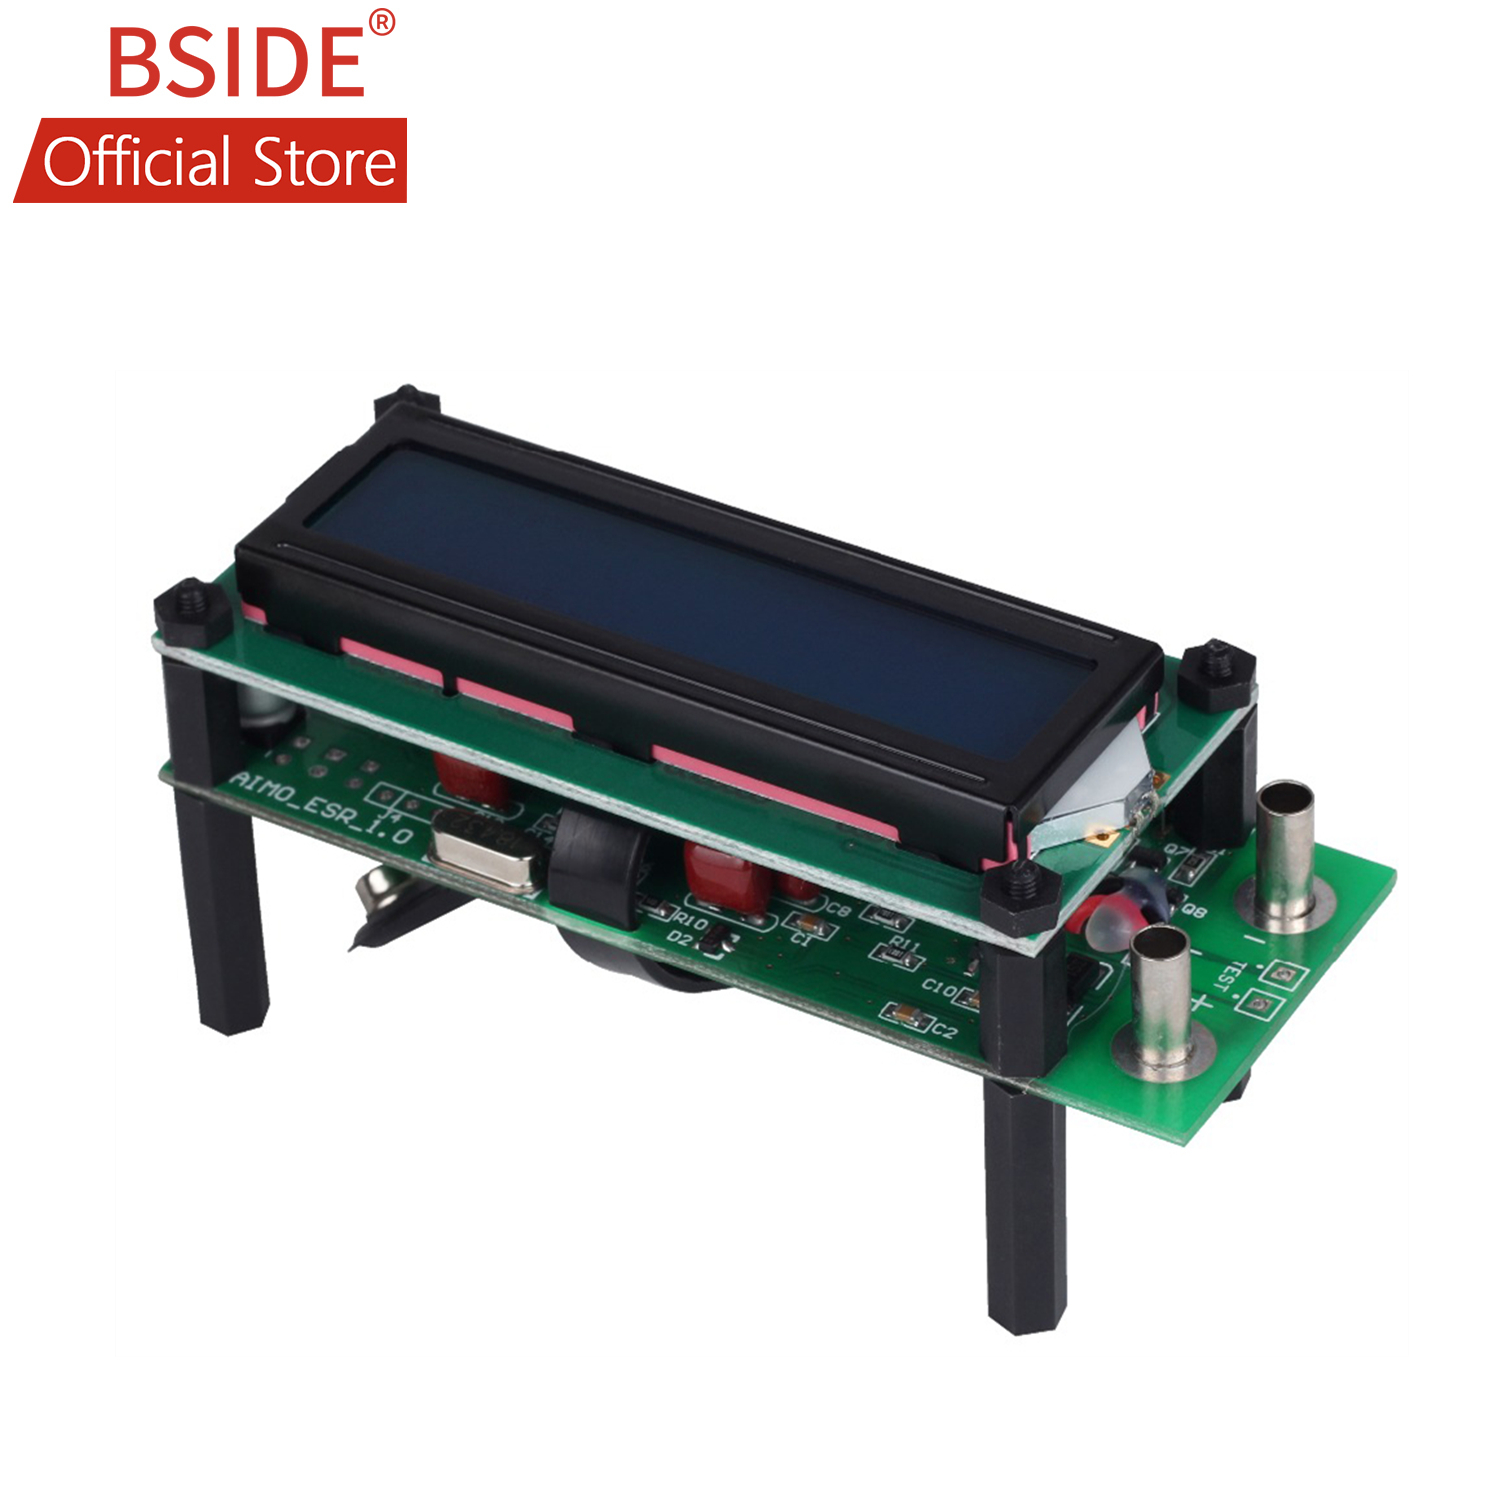 BSIDE ESR01 Auto Range Digital LCR Tester Resistance Capacitance Inductance Measurement Capacitor ESR Meter USB Power